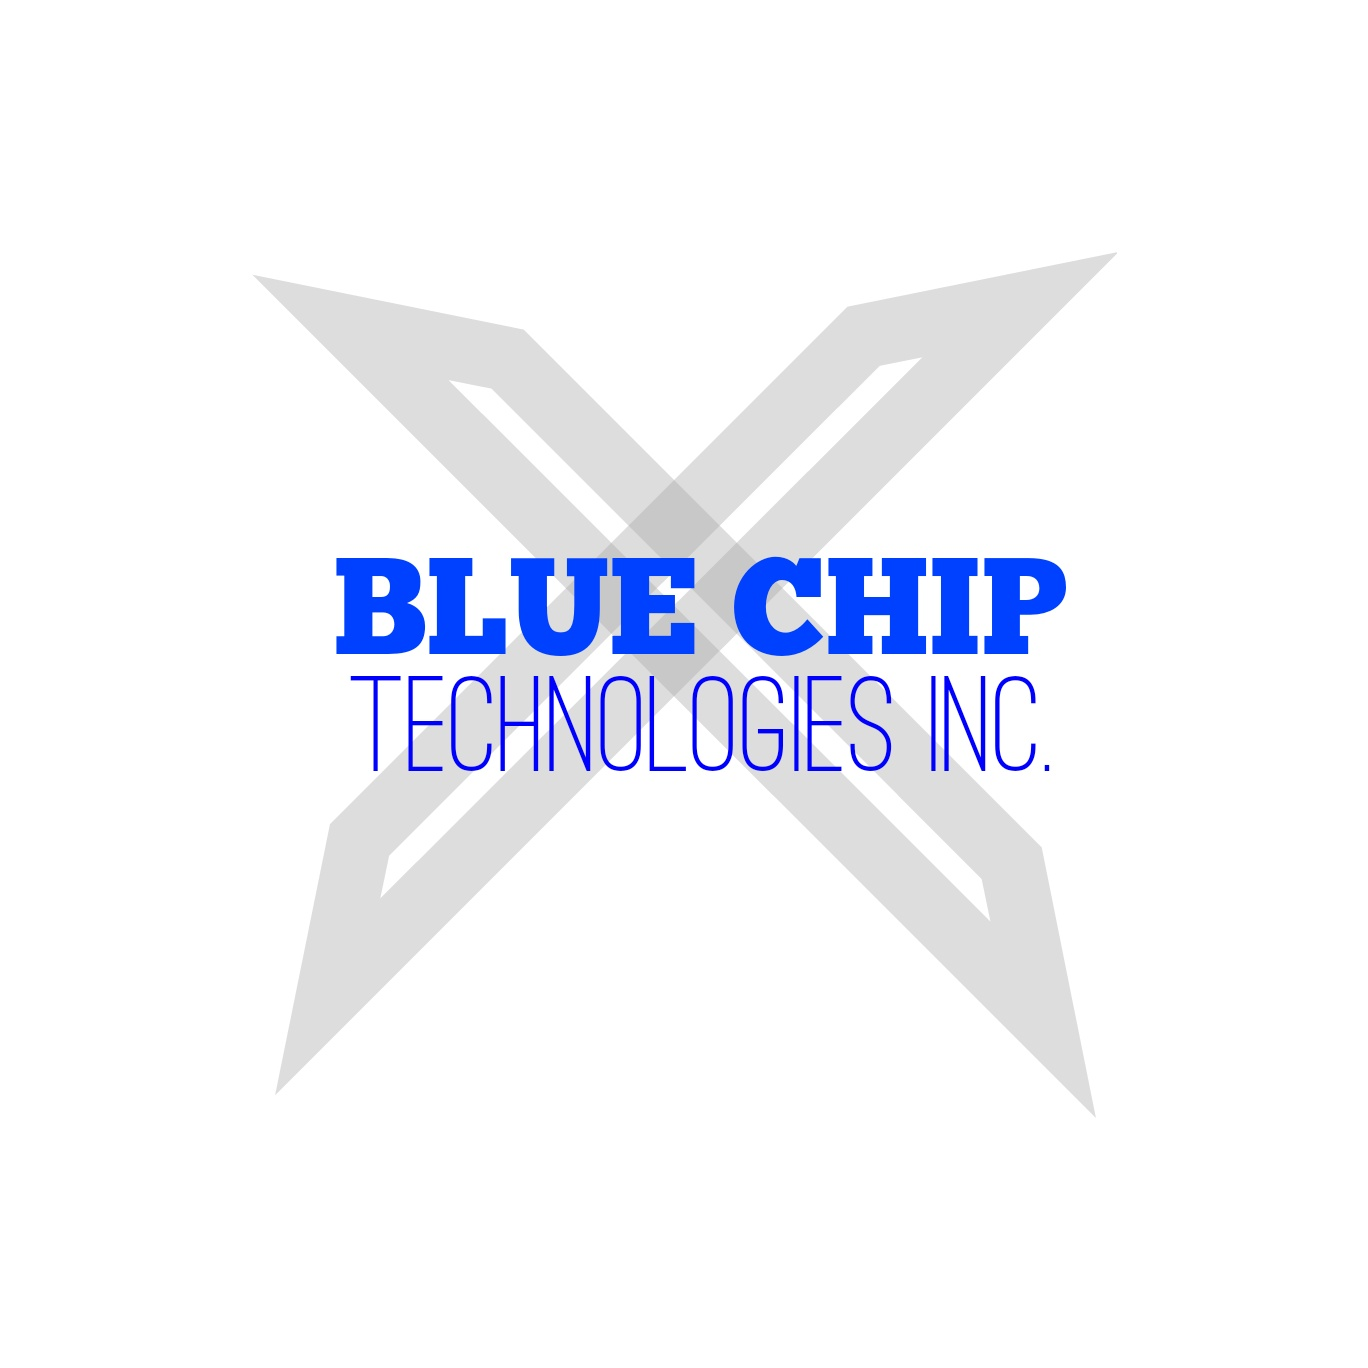 Blue chip tech   logo